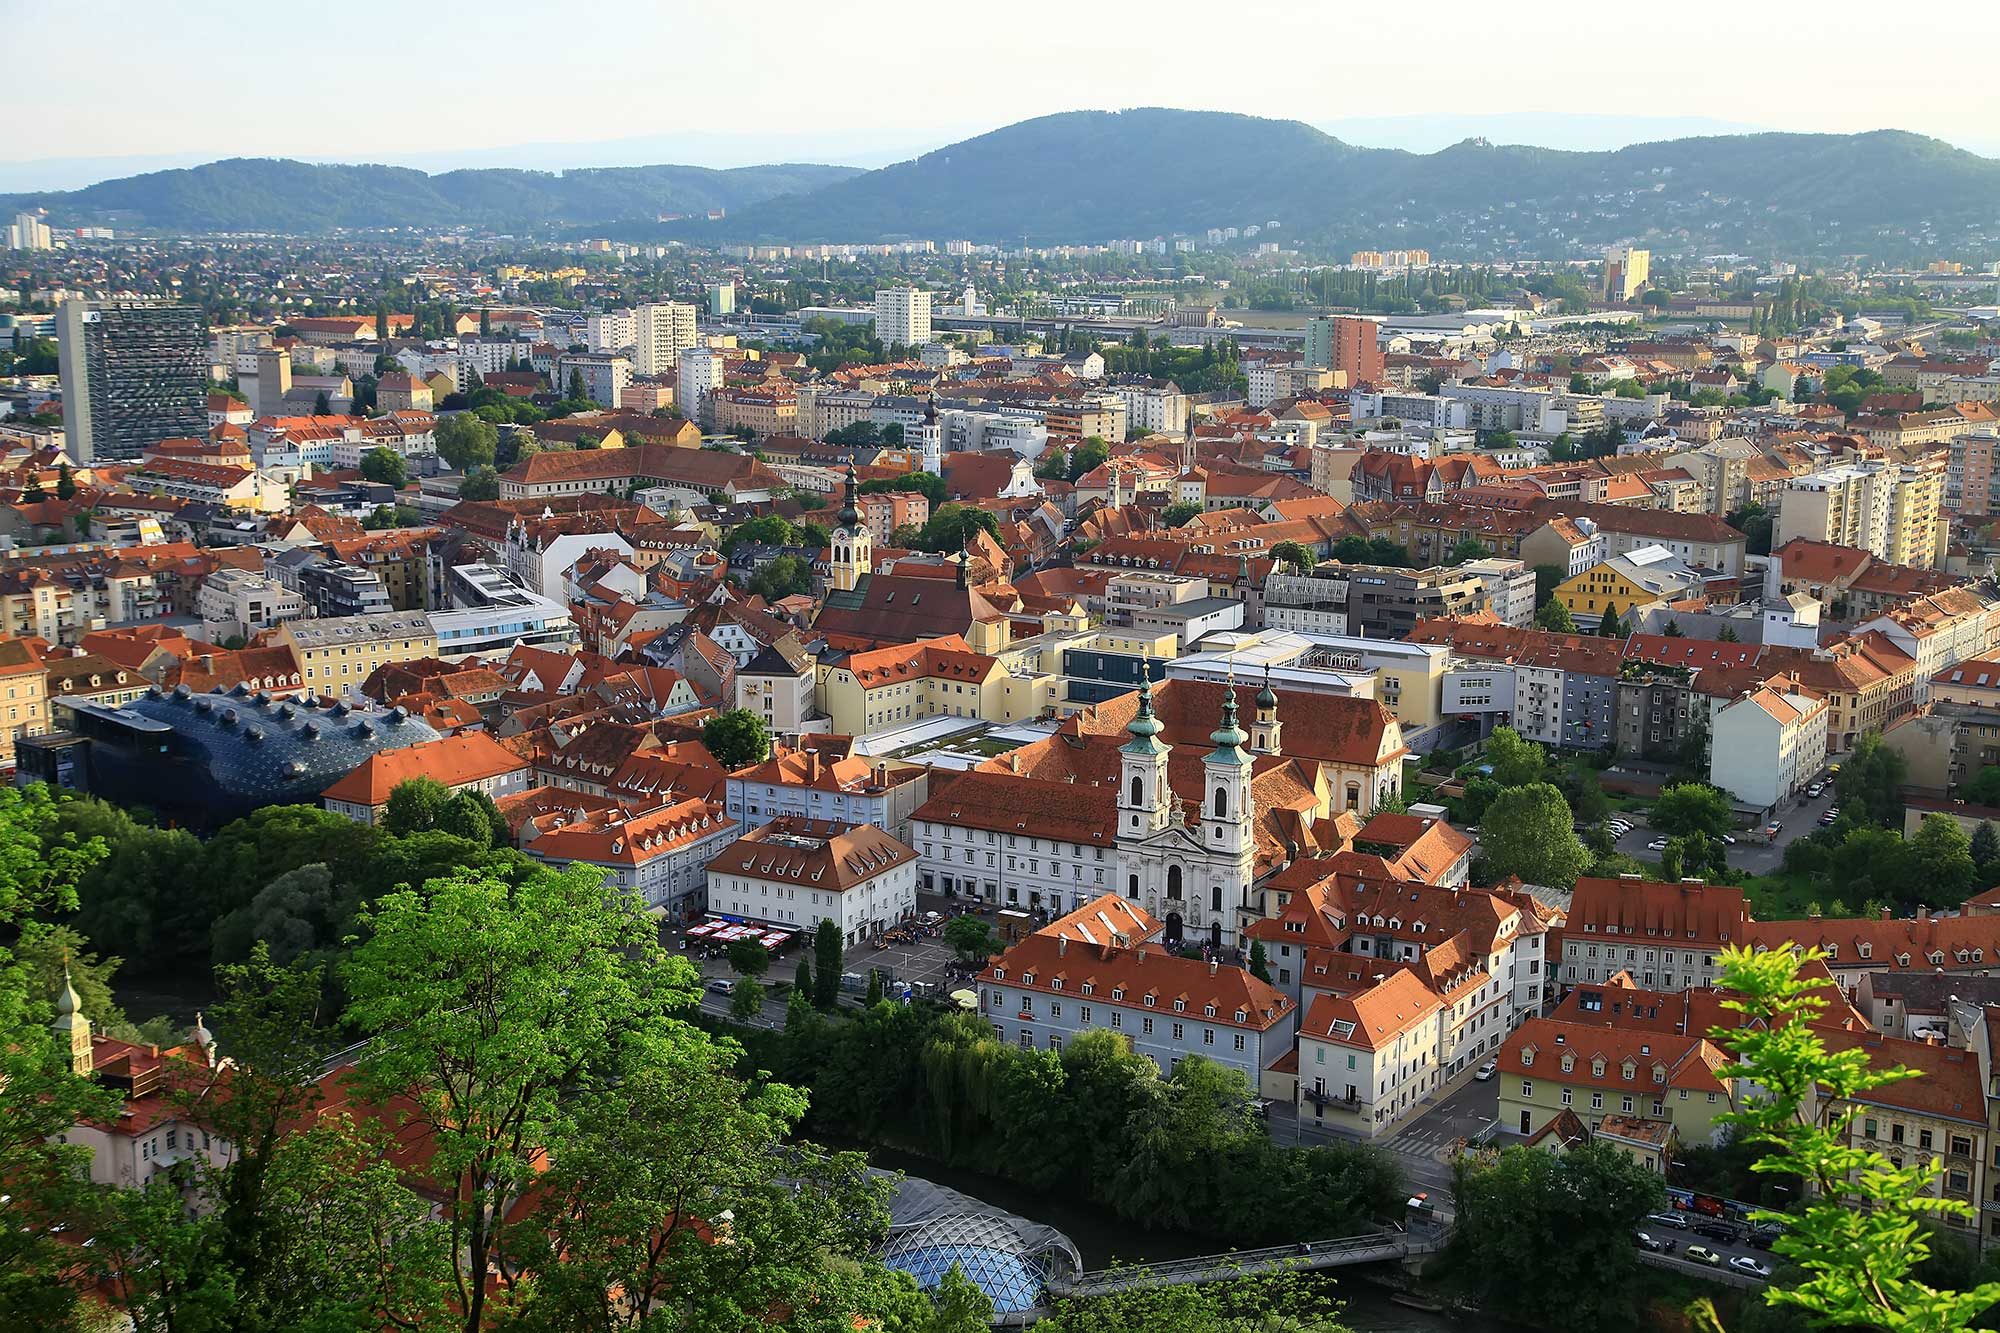 Graz from above. © Ulli Maier & Nisa Maier